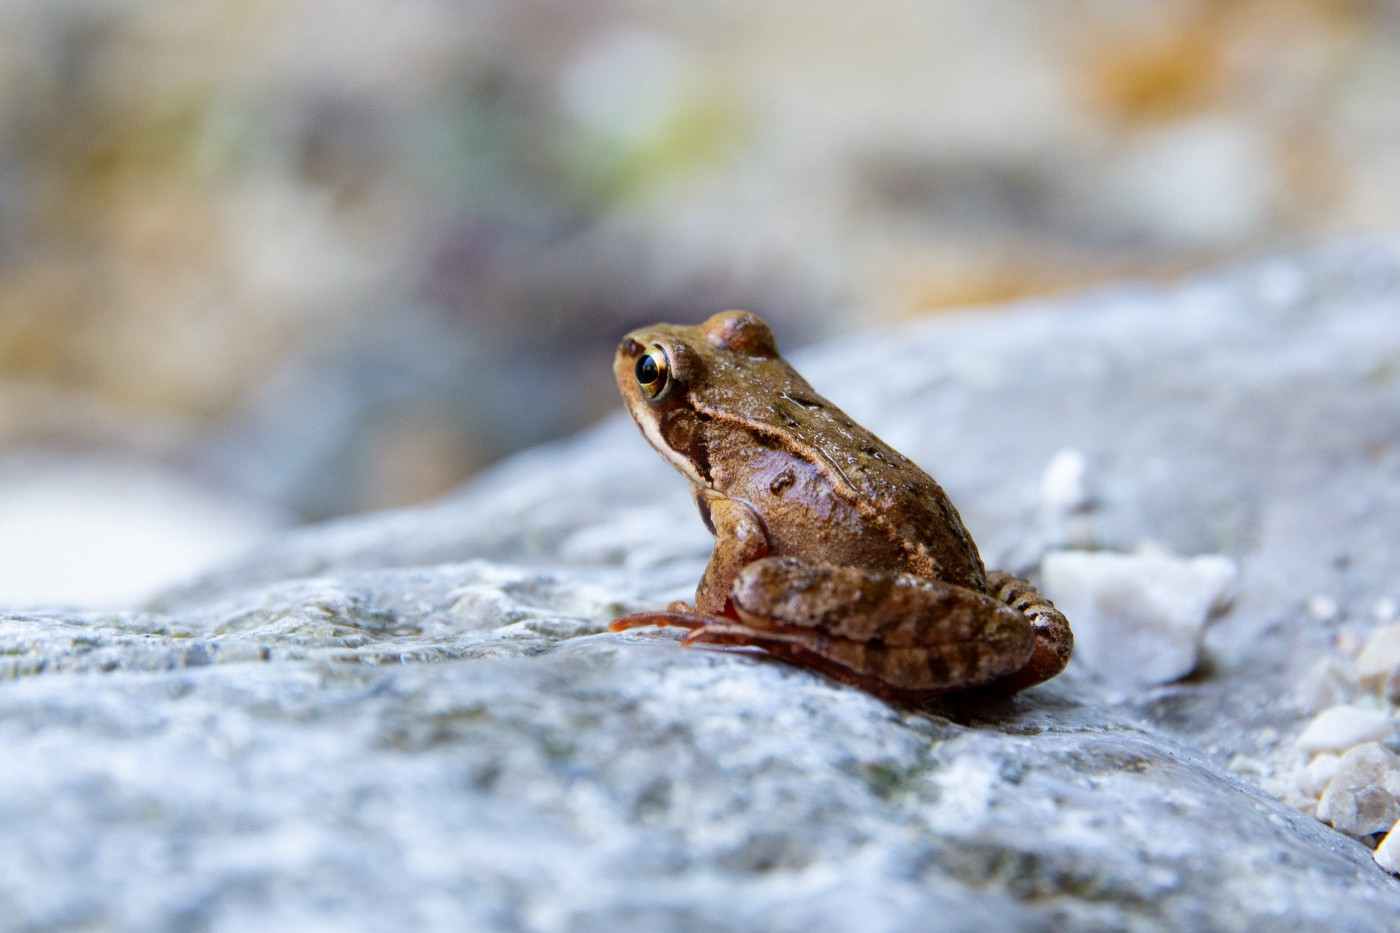 A small frog sitting on a rock looking away from the screen.